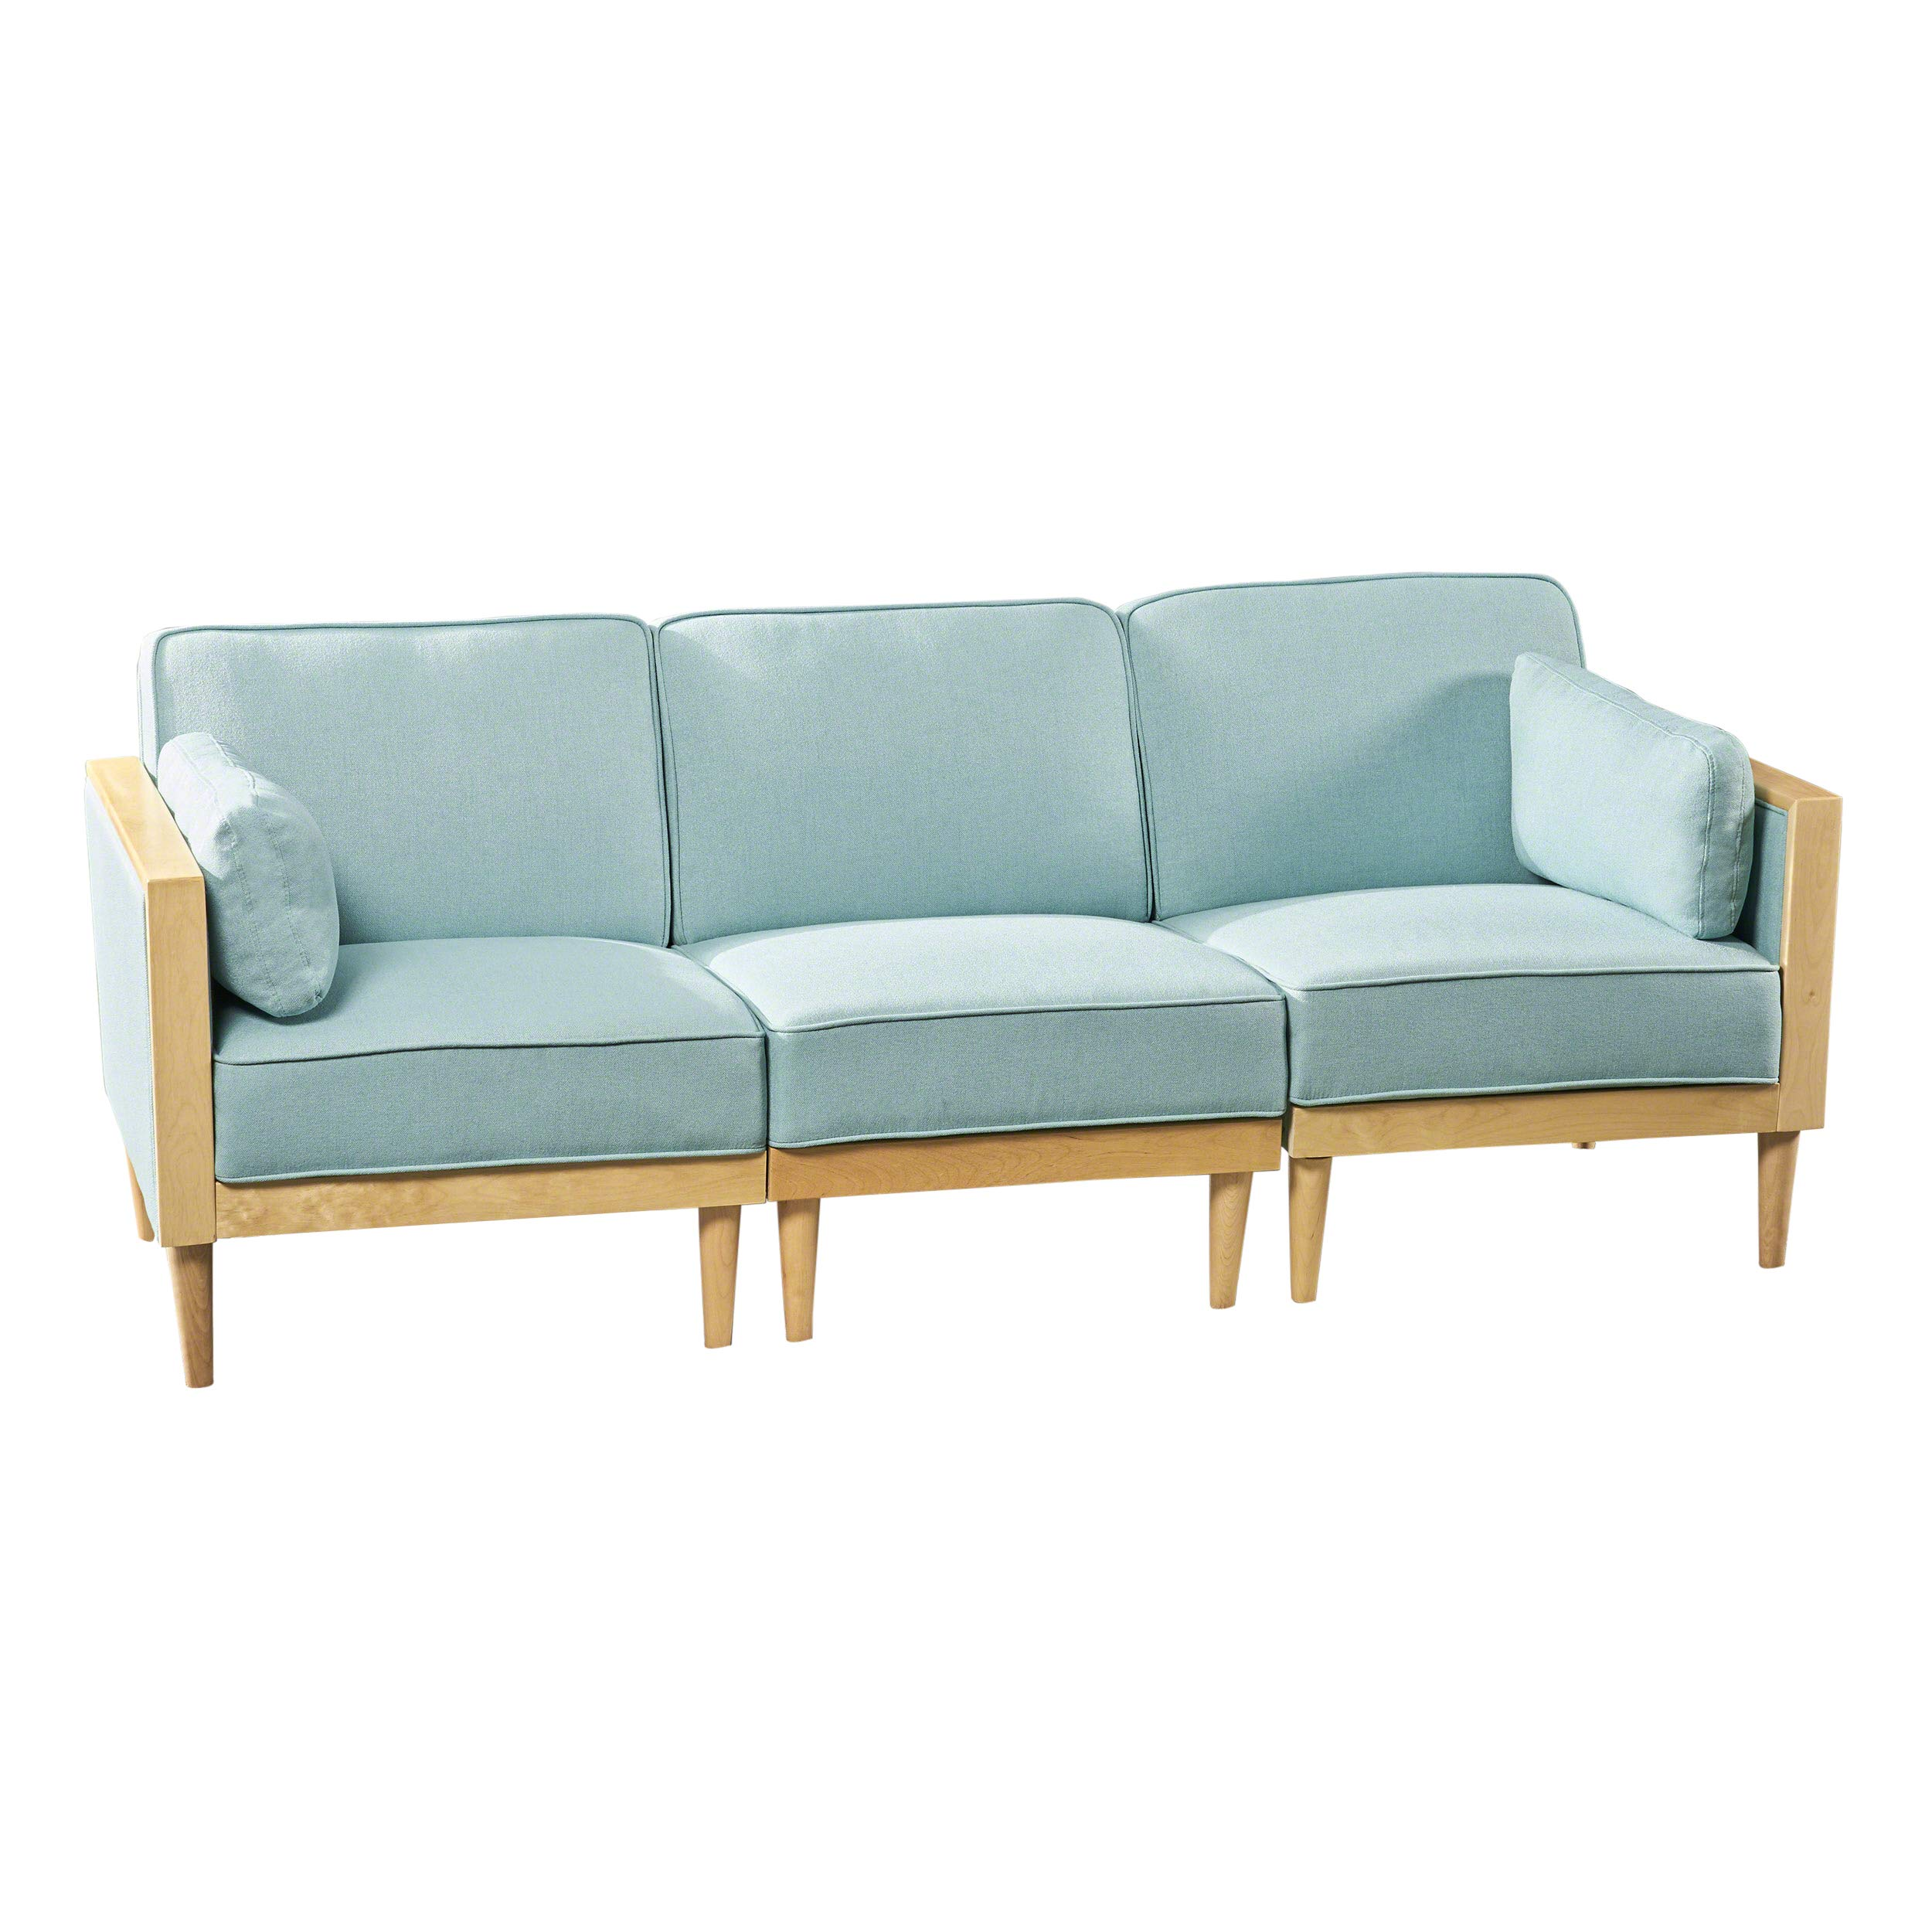 Christopher Knight Home Tegan Sectional Sofa Set 3-Piece Deep Seating, Piped Cushions Contemporary Mid-Century Modern Modular Configurable Sky Blue with Natural Finish by Christopher Knight Home